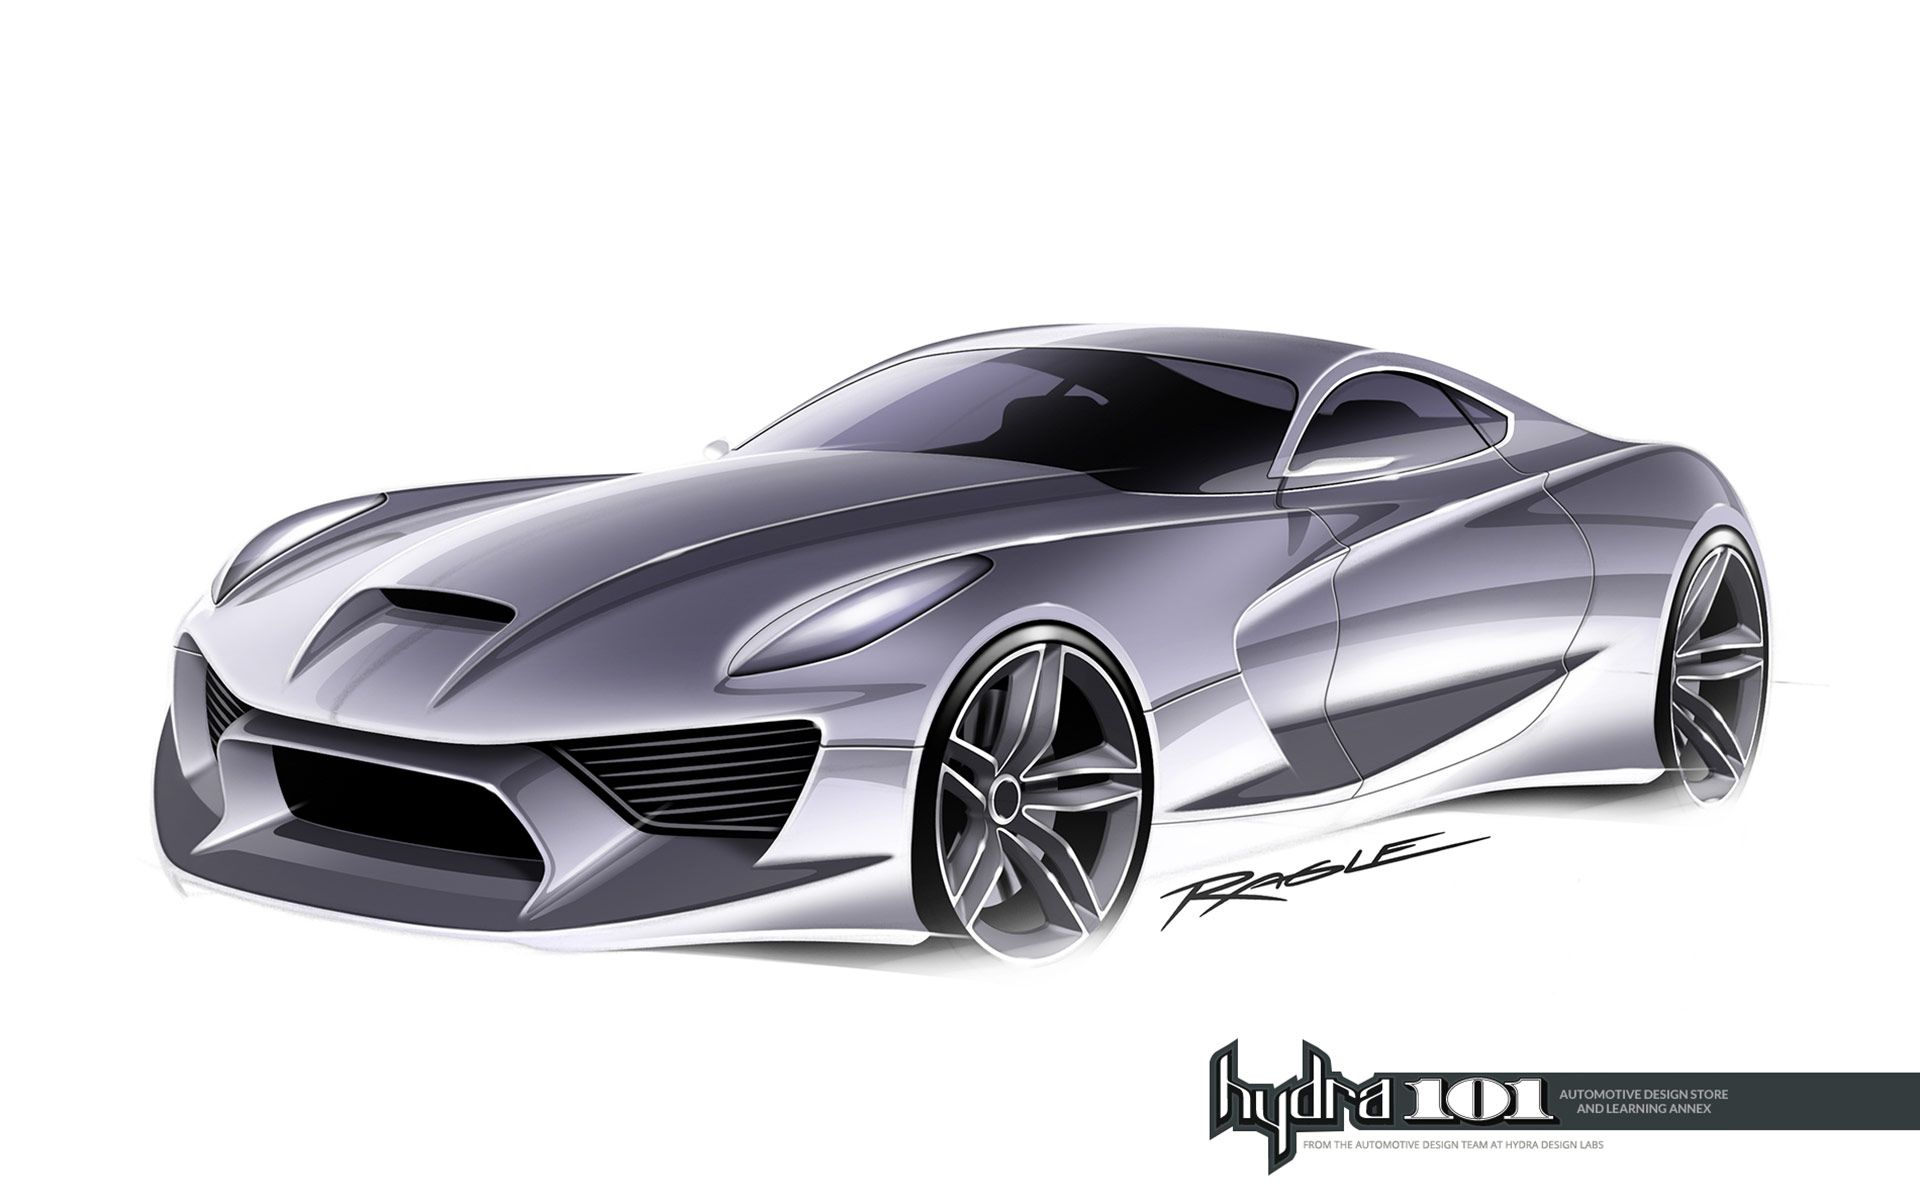 Supercar Design Sketch By Gary Ragle Supercar Design Futuristic Cars Design Automotive Design